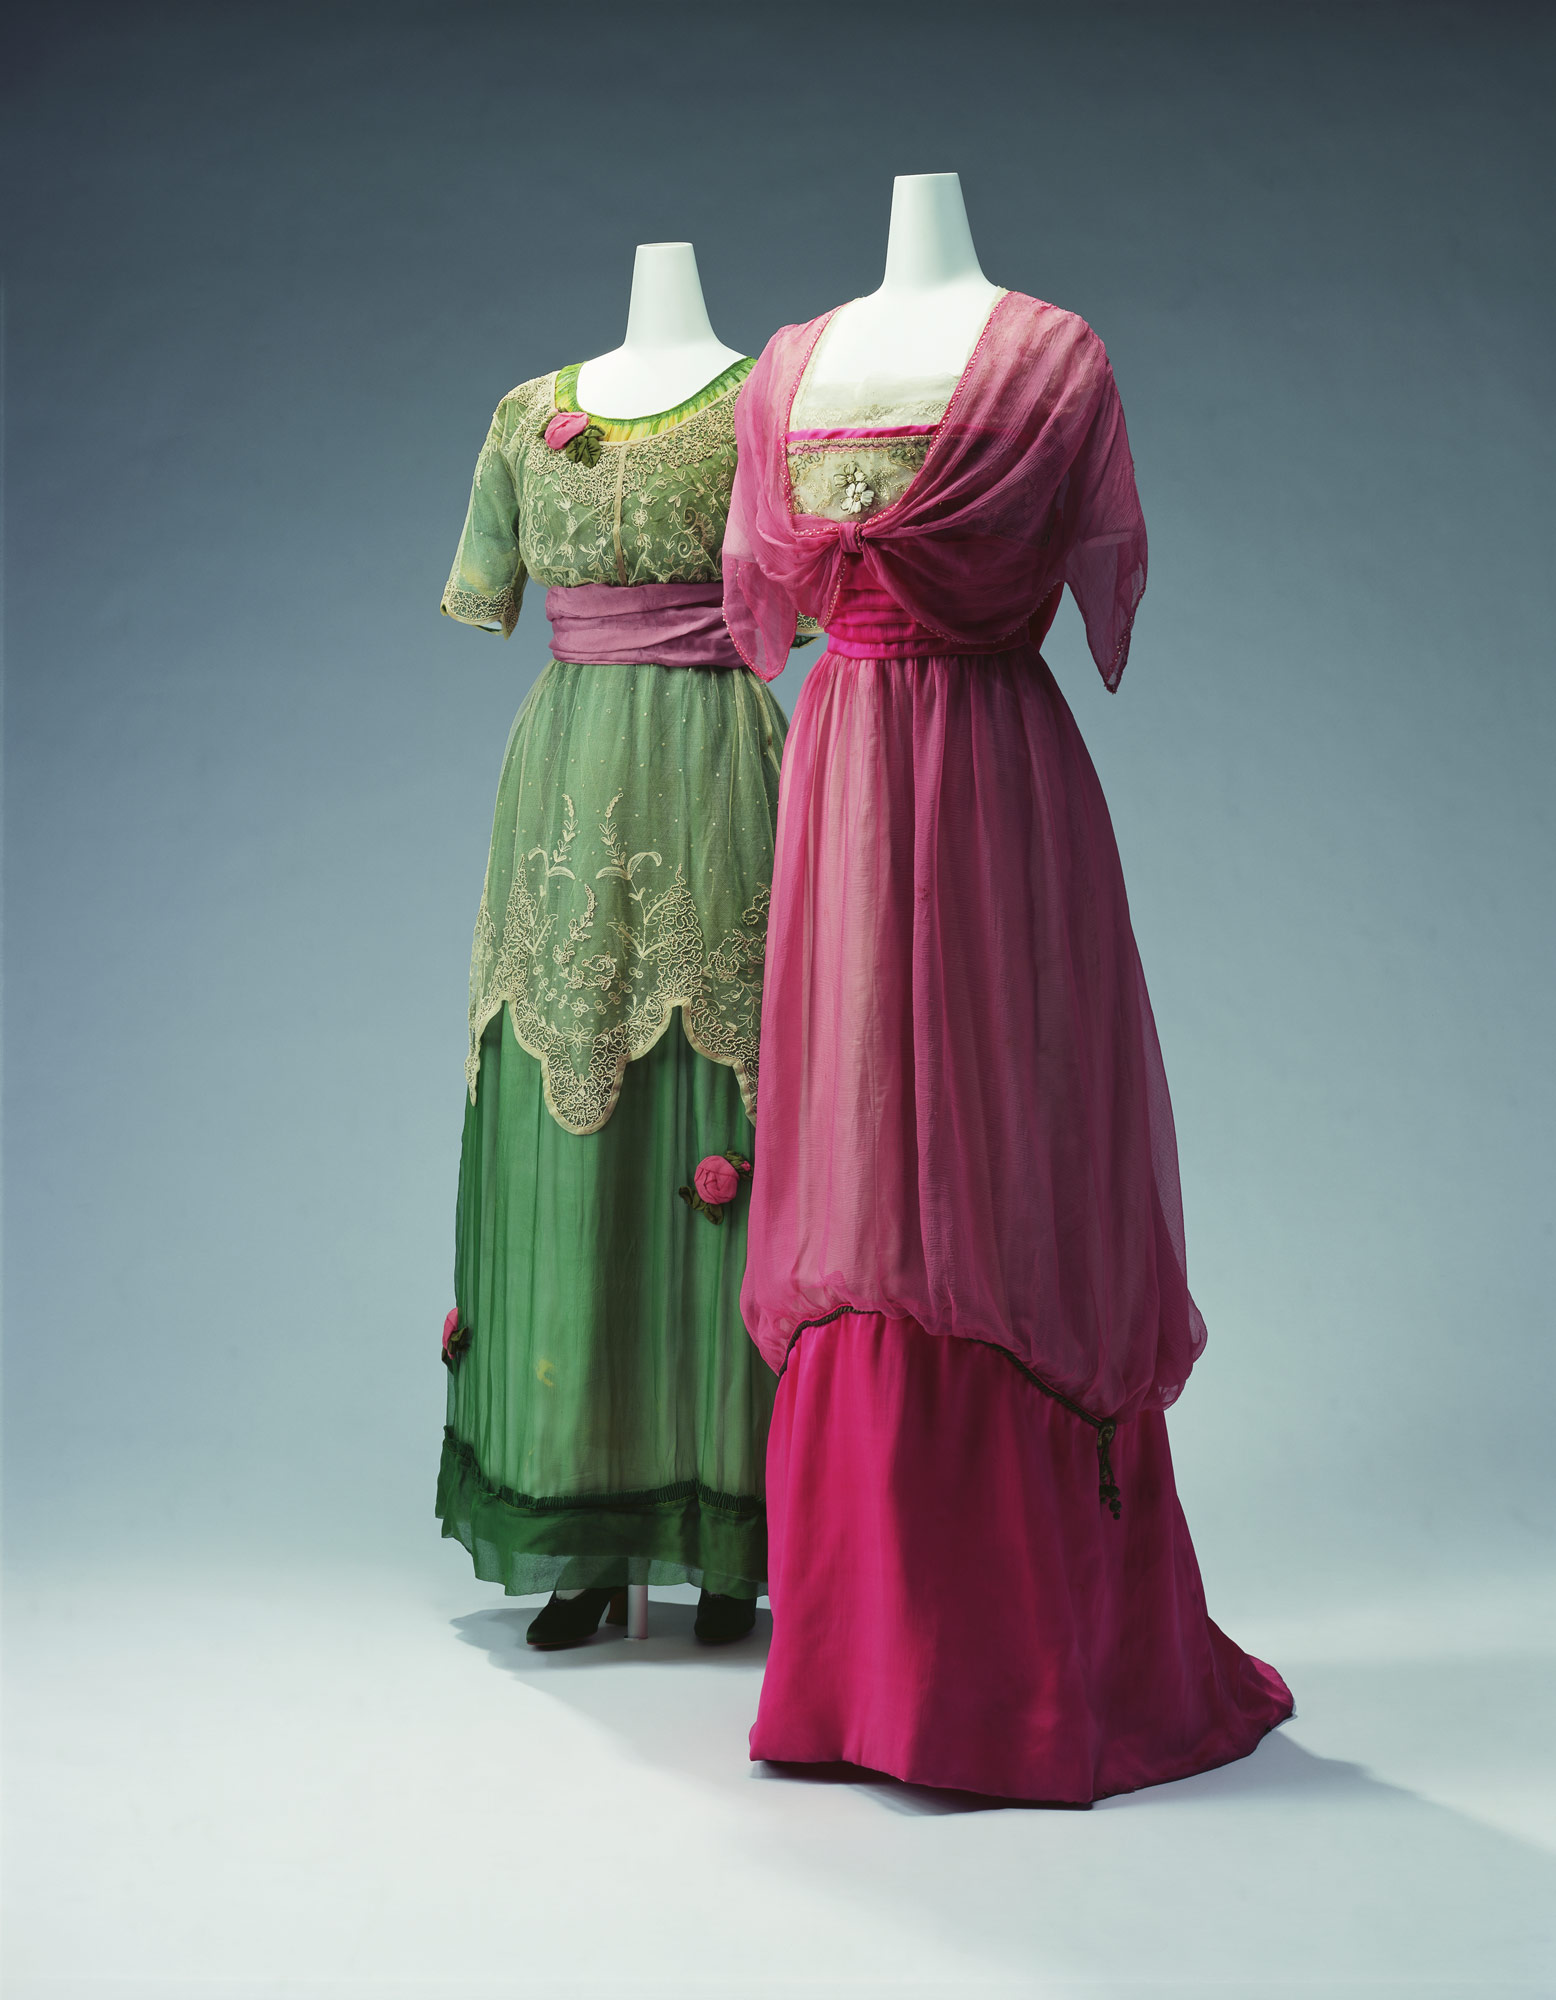 Evening Dress [Left] Evening Dress [Right]